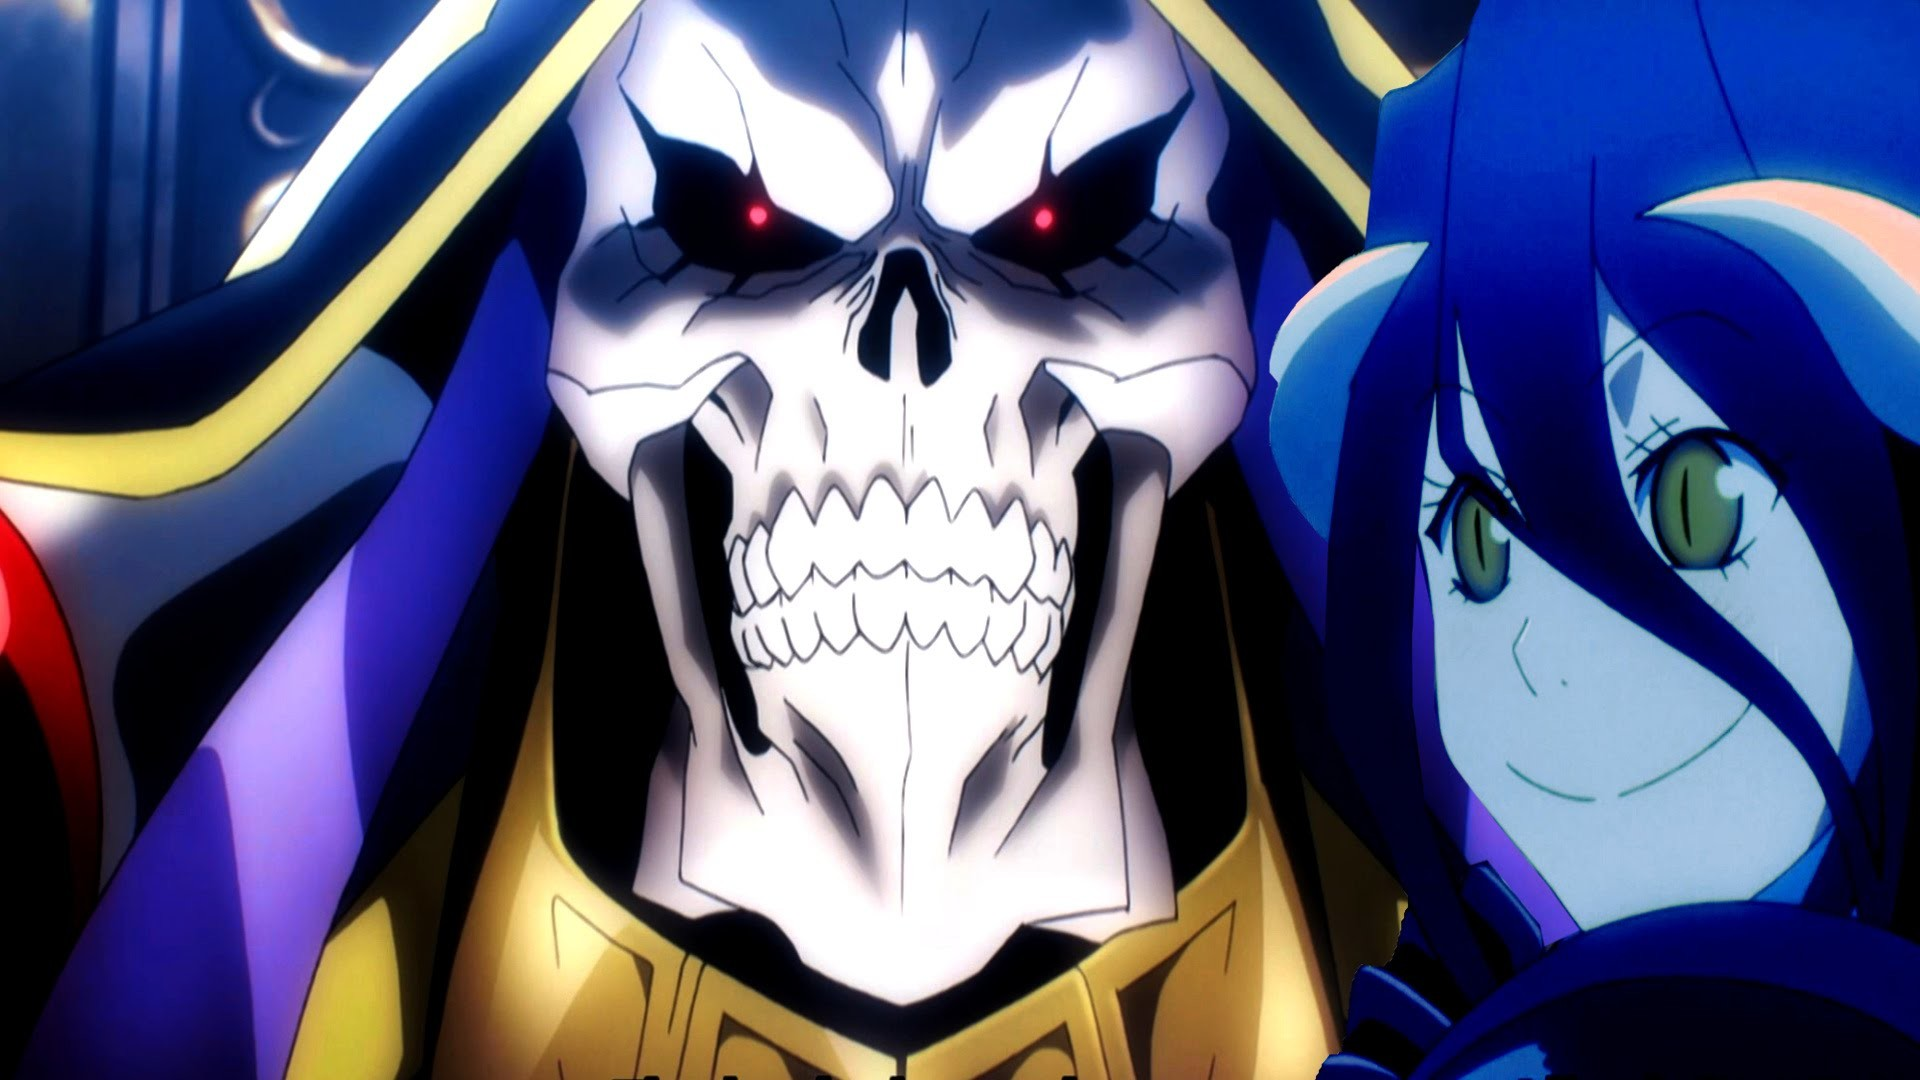 Overlord Episode 4 オーバーロード Anime Review – Ainz The Overlord – YouTube